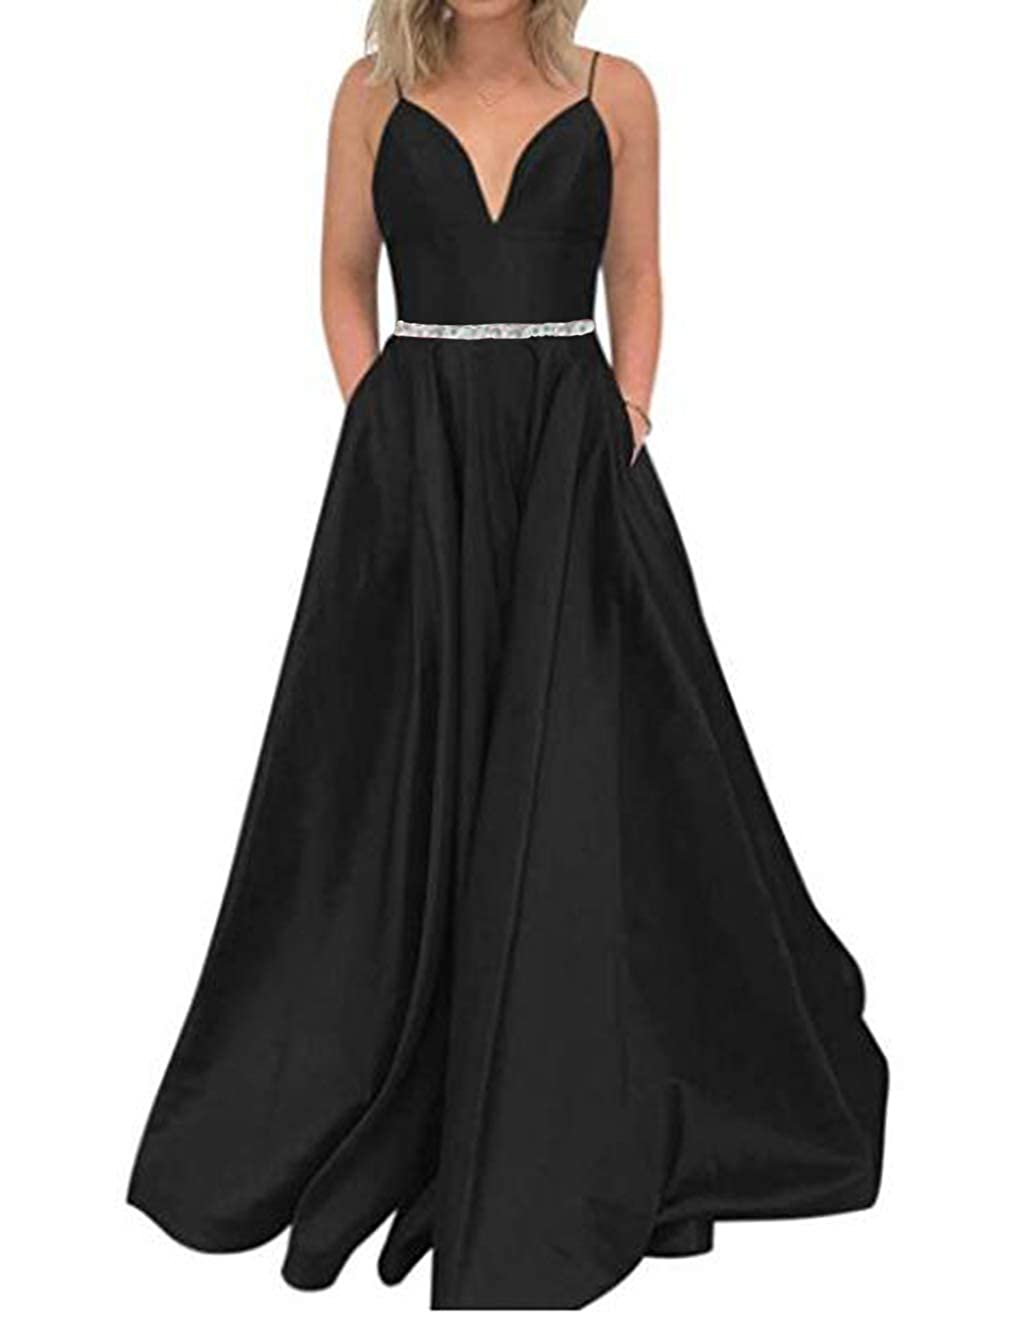 Black Tsbridal Women's A Line Bead Prom Dresses V Neck Satin with Pockets Evening Gown